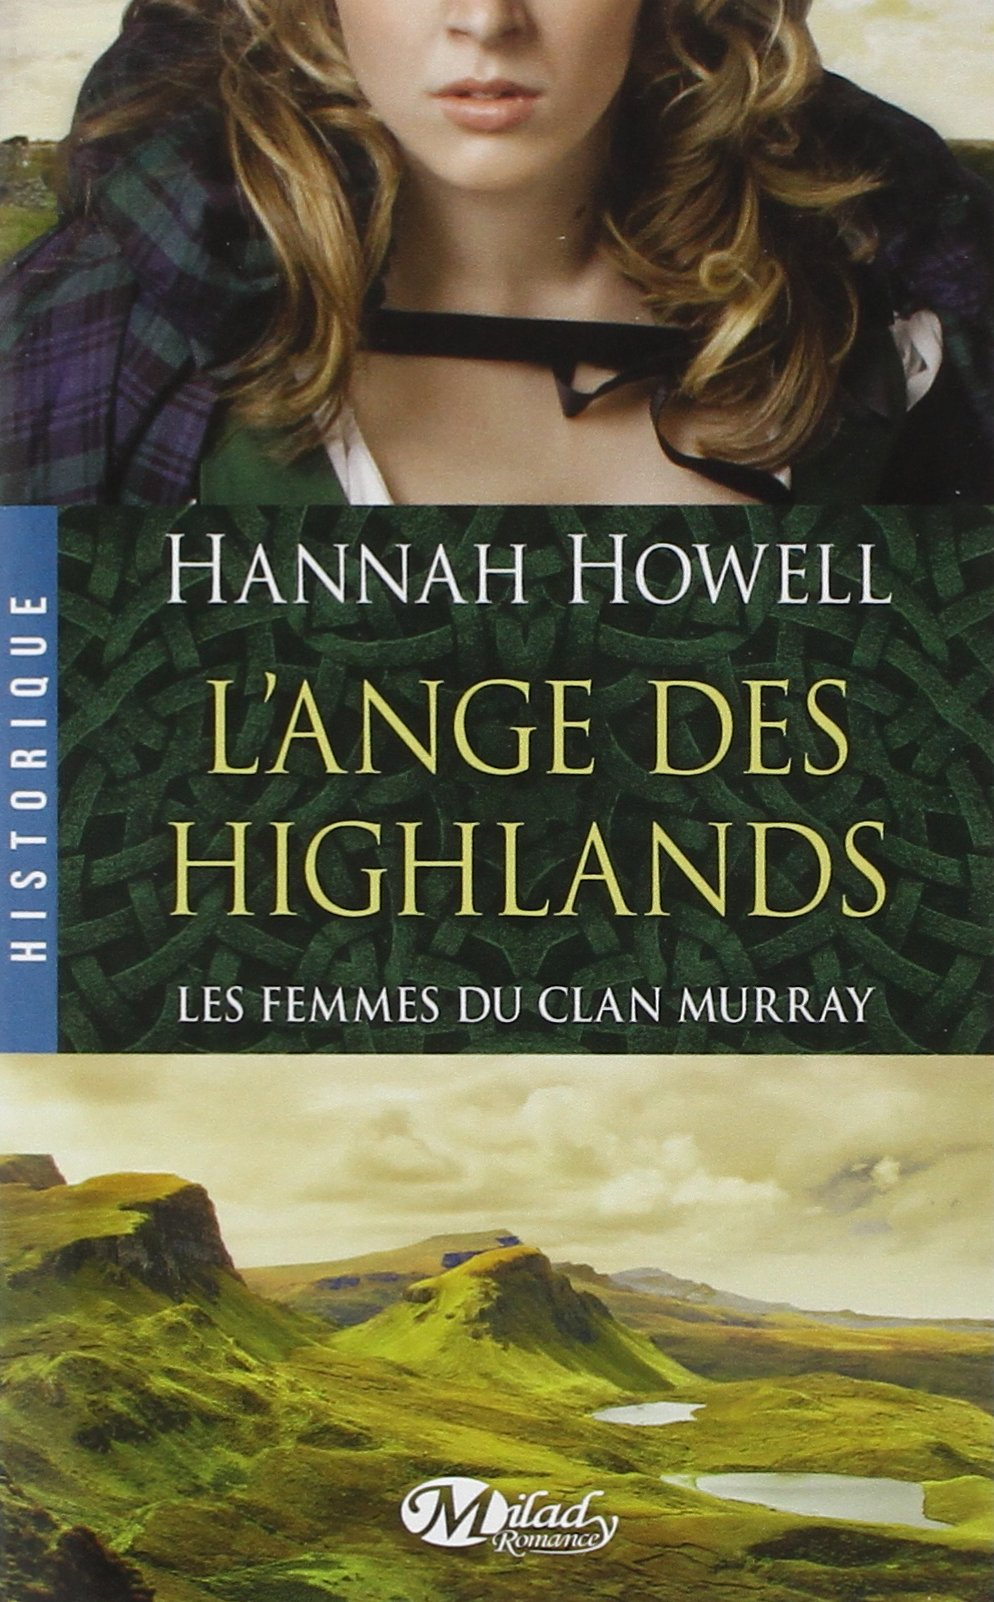 http://queenofreading1605.blogspot.be/2015/03/les-femmes-du-clan-murray-tome-1-lange.html